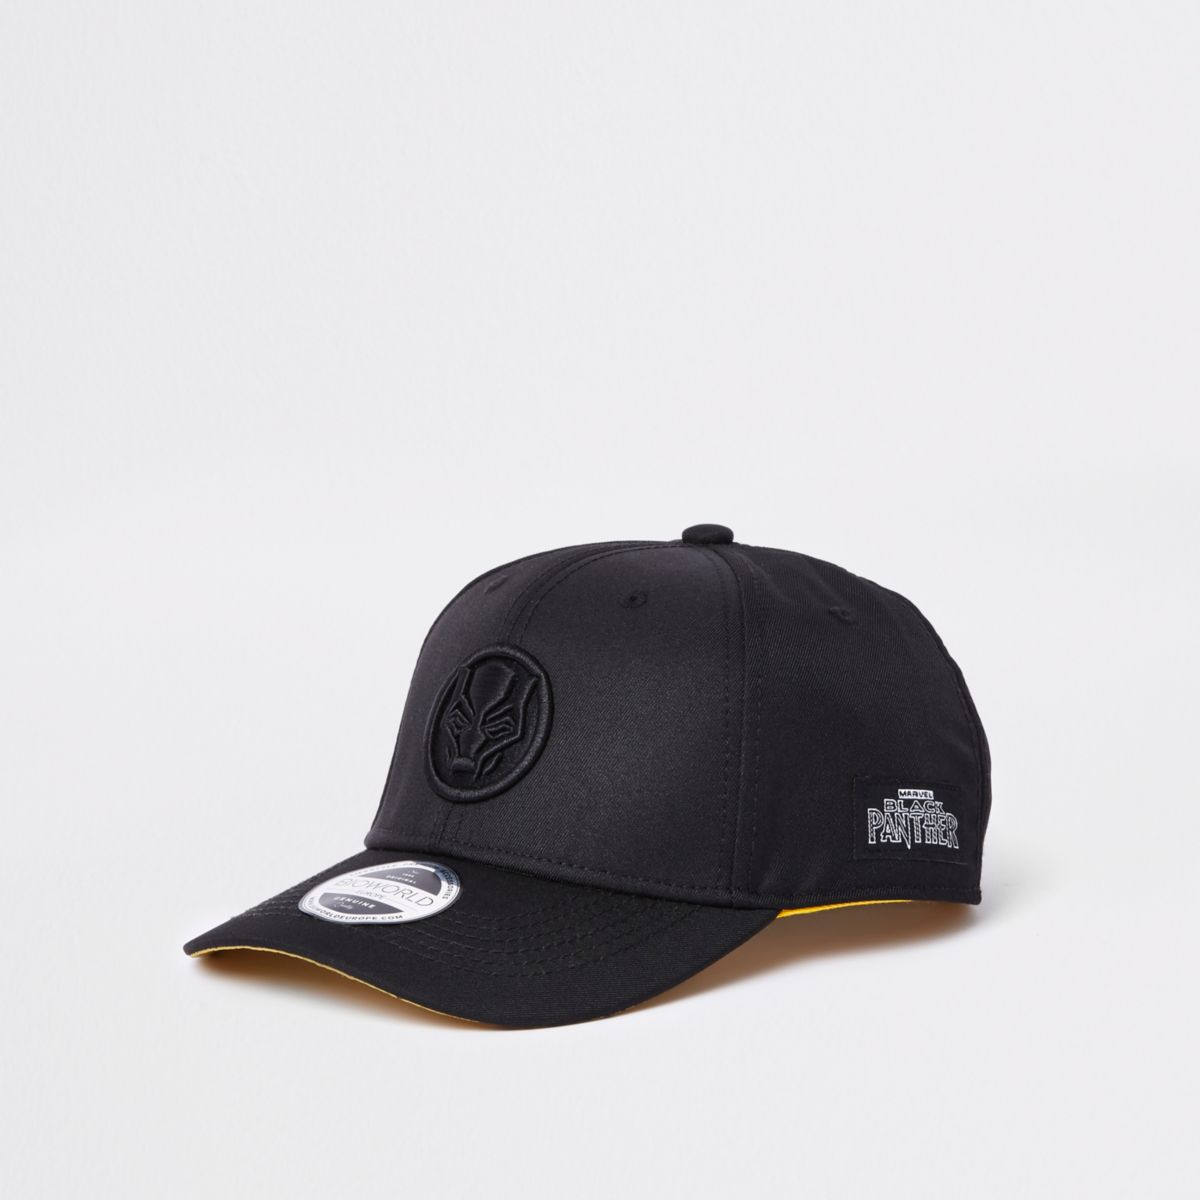 Black 'Black Panther' baseball cap